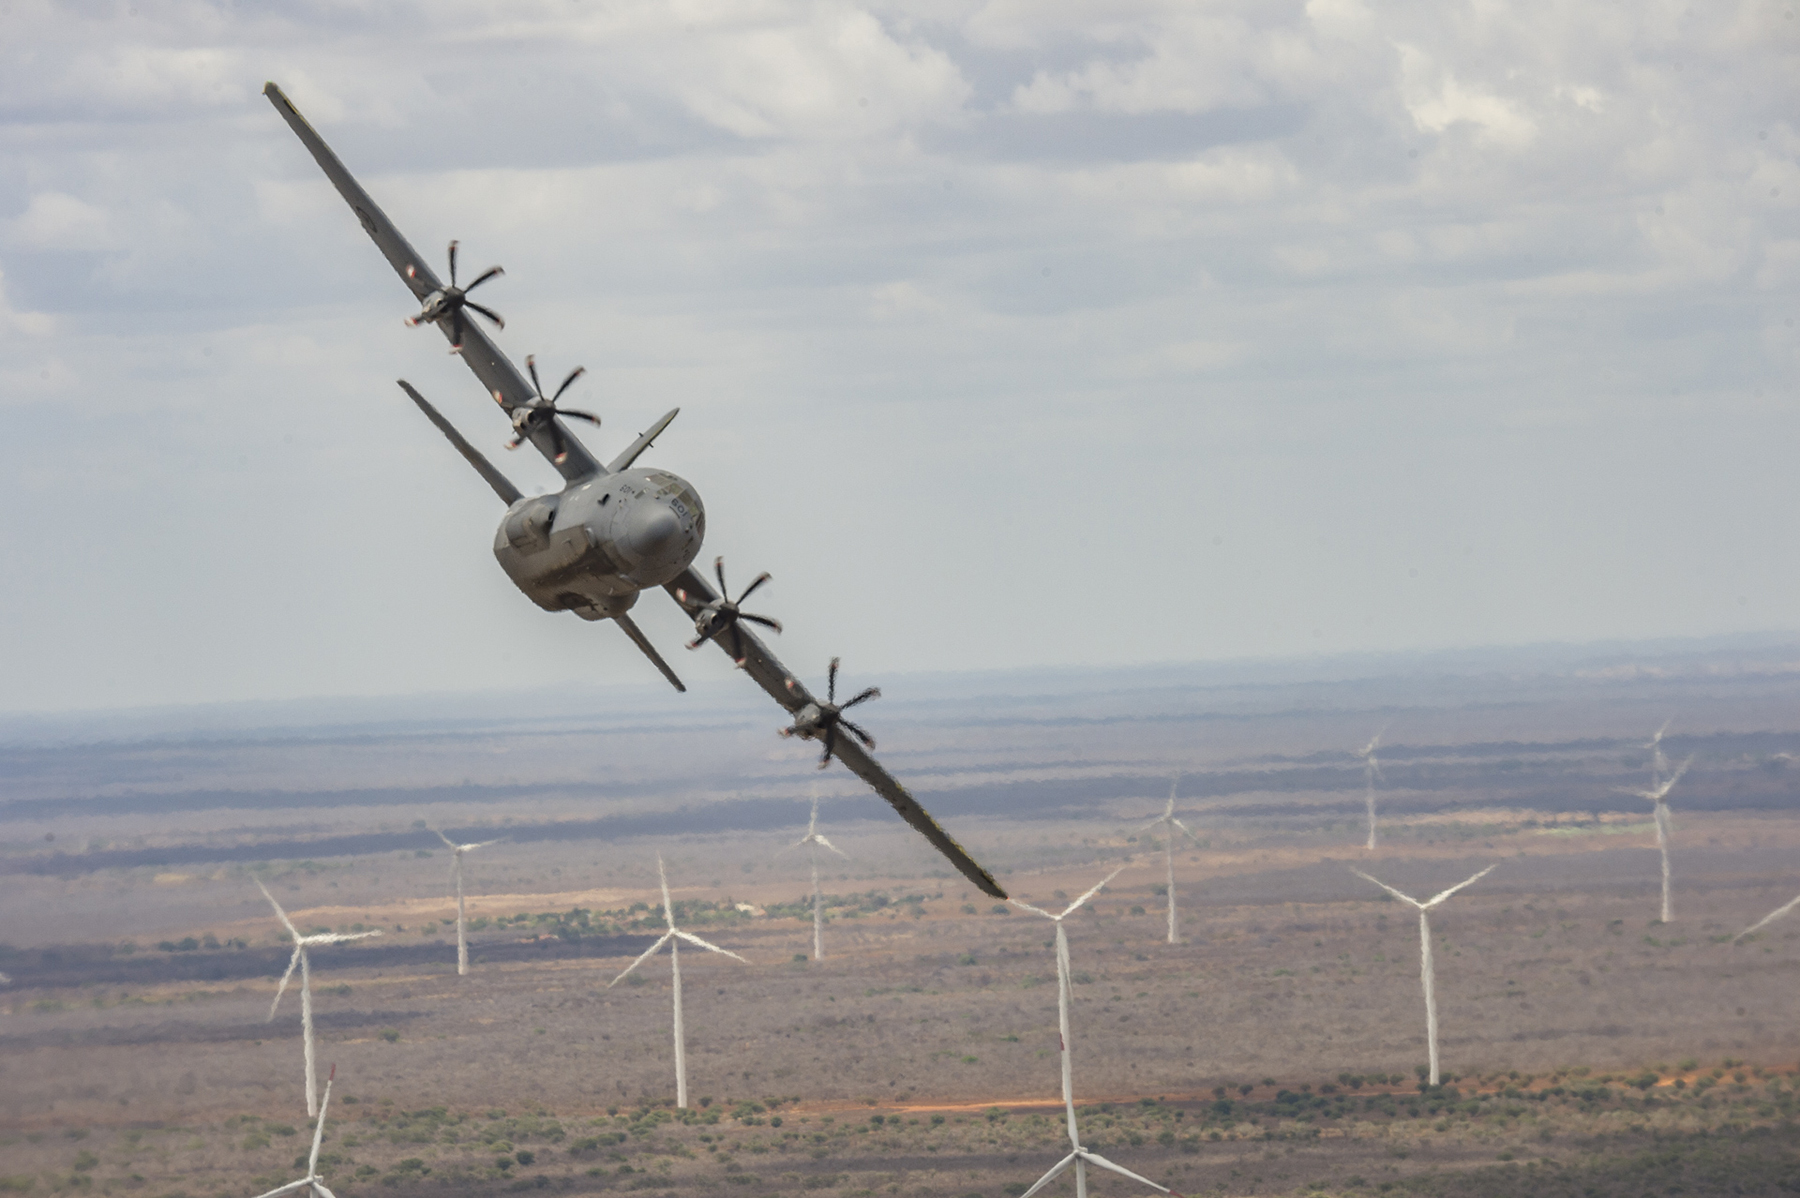 A CC-130J Hercules from 436 Transport Squadron flies over a windfarm near Natal, Brazil during a training flight on CRUZEX 2018 on November 23, 2018. PHOTO: Able Seaman Paul Green